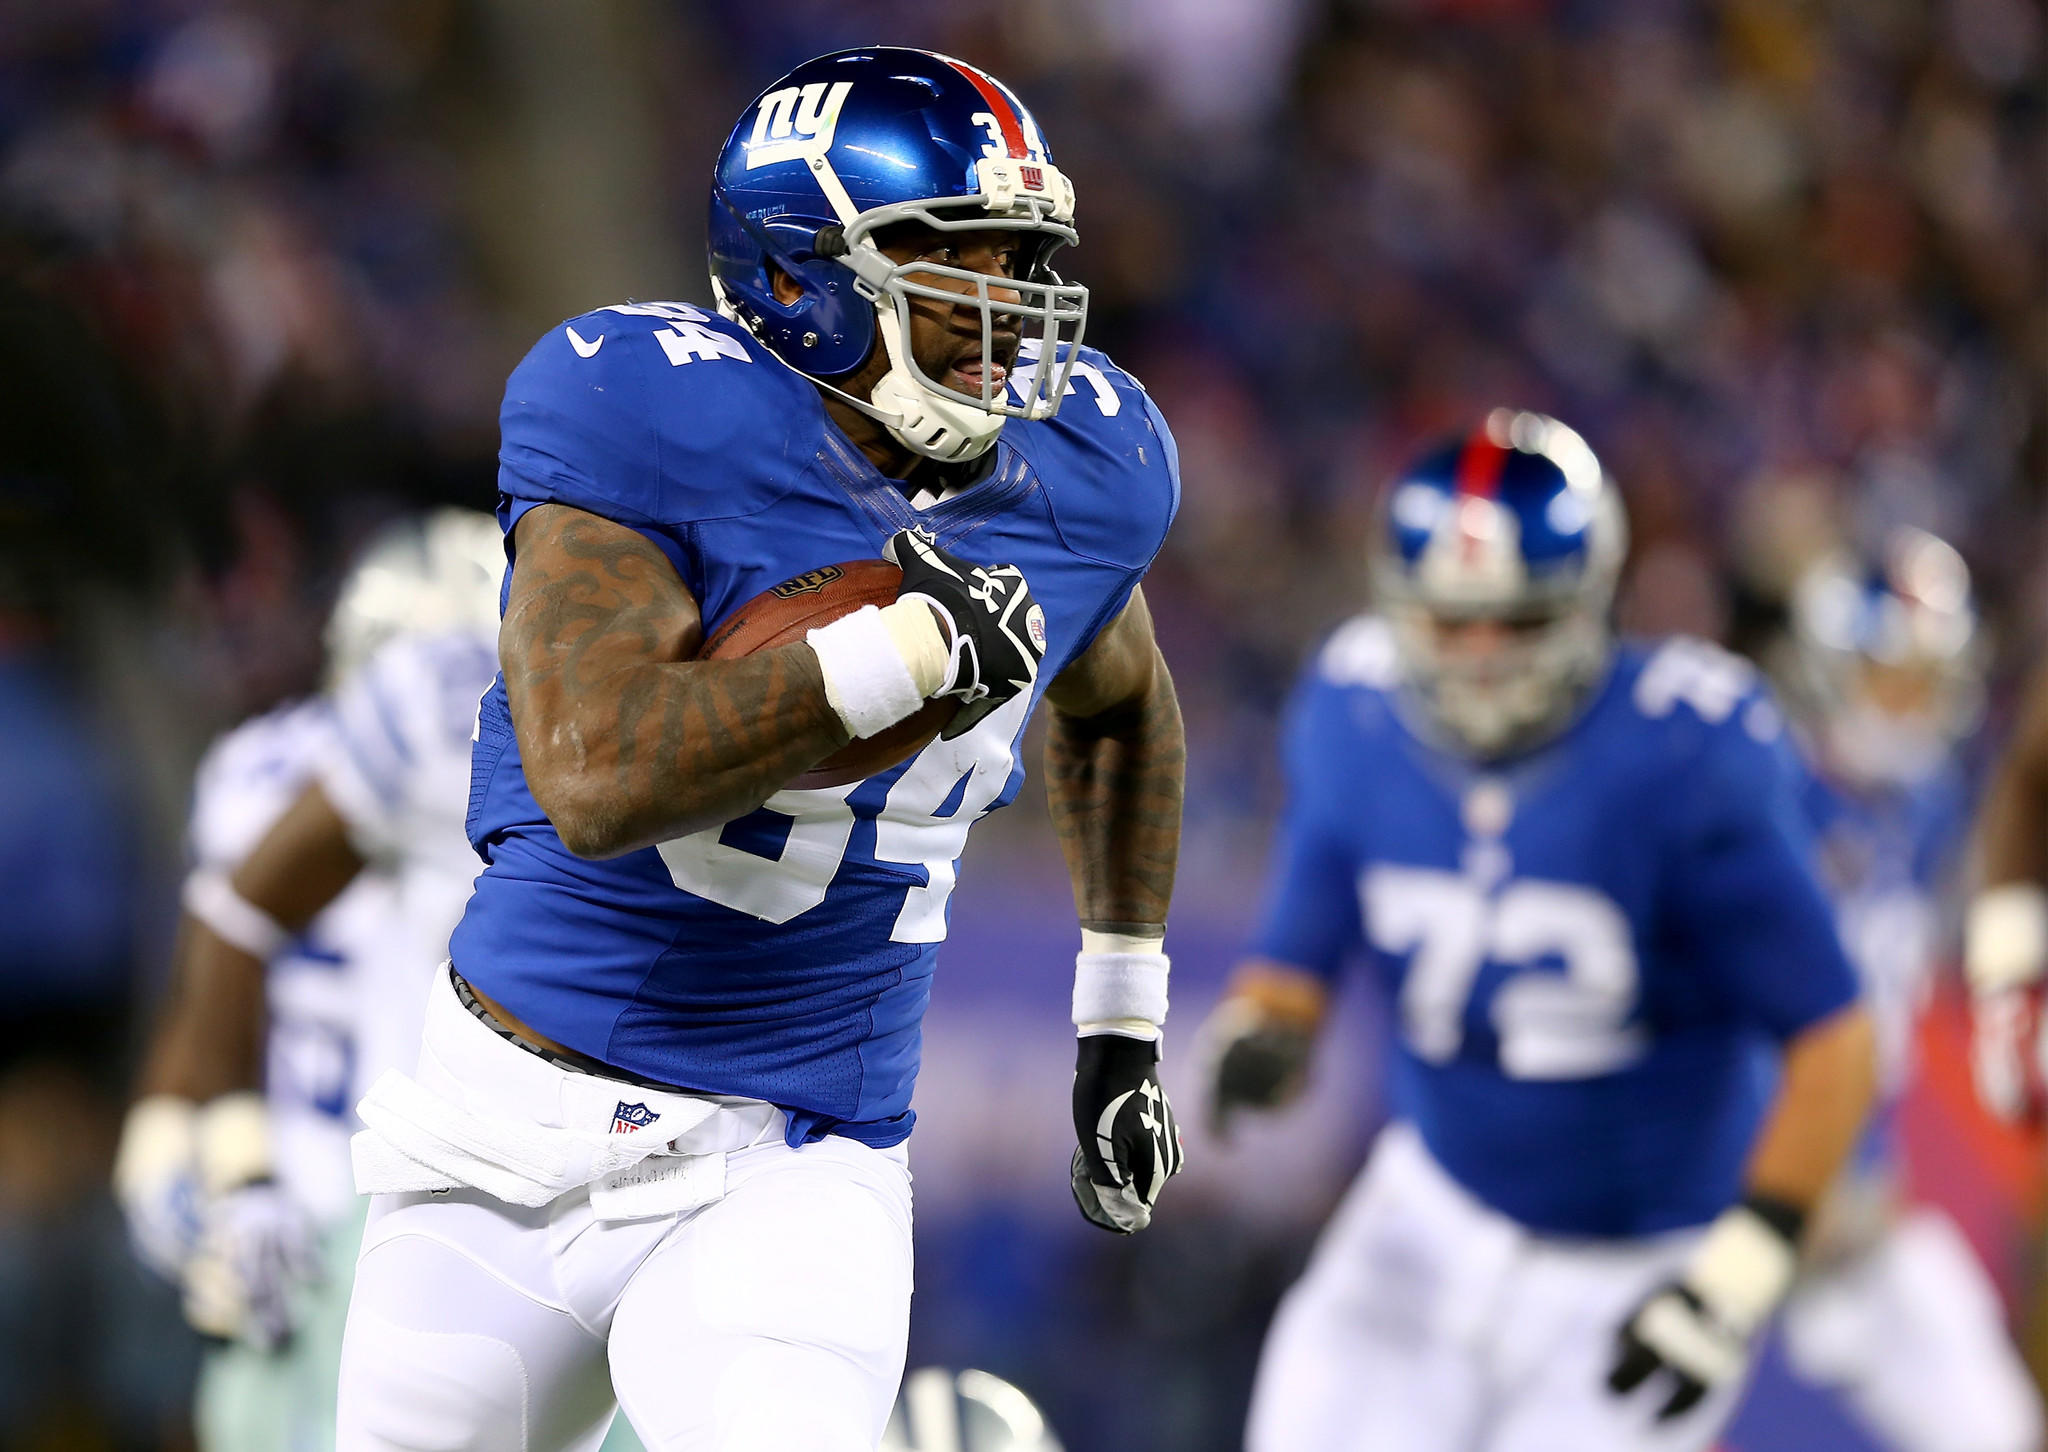 Brandon Jacobs of the New York Giants carries the ball in the second quarter against the Dallas Cowboys at MetLife Stadium on Nov. 24.